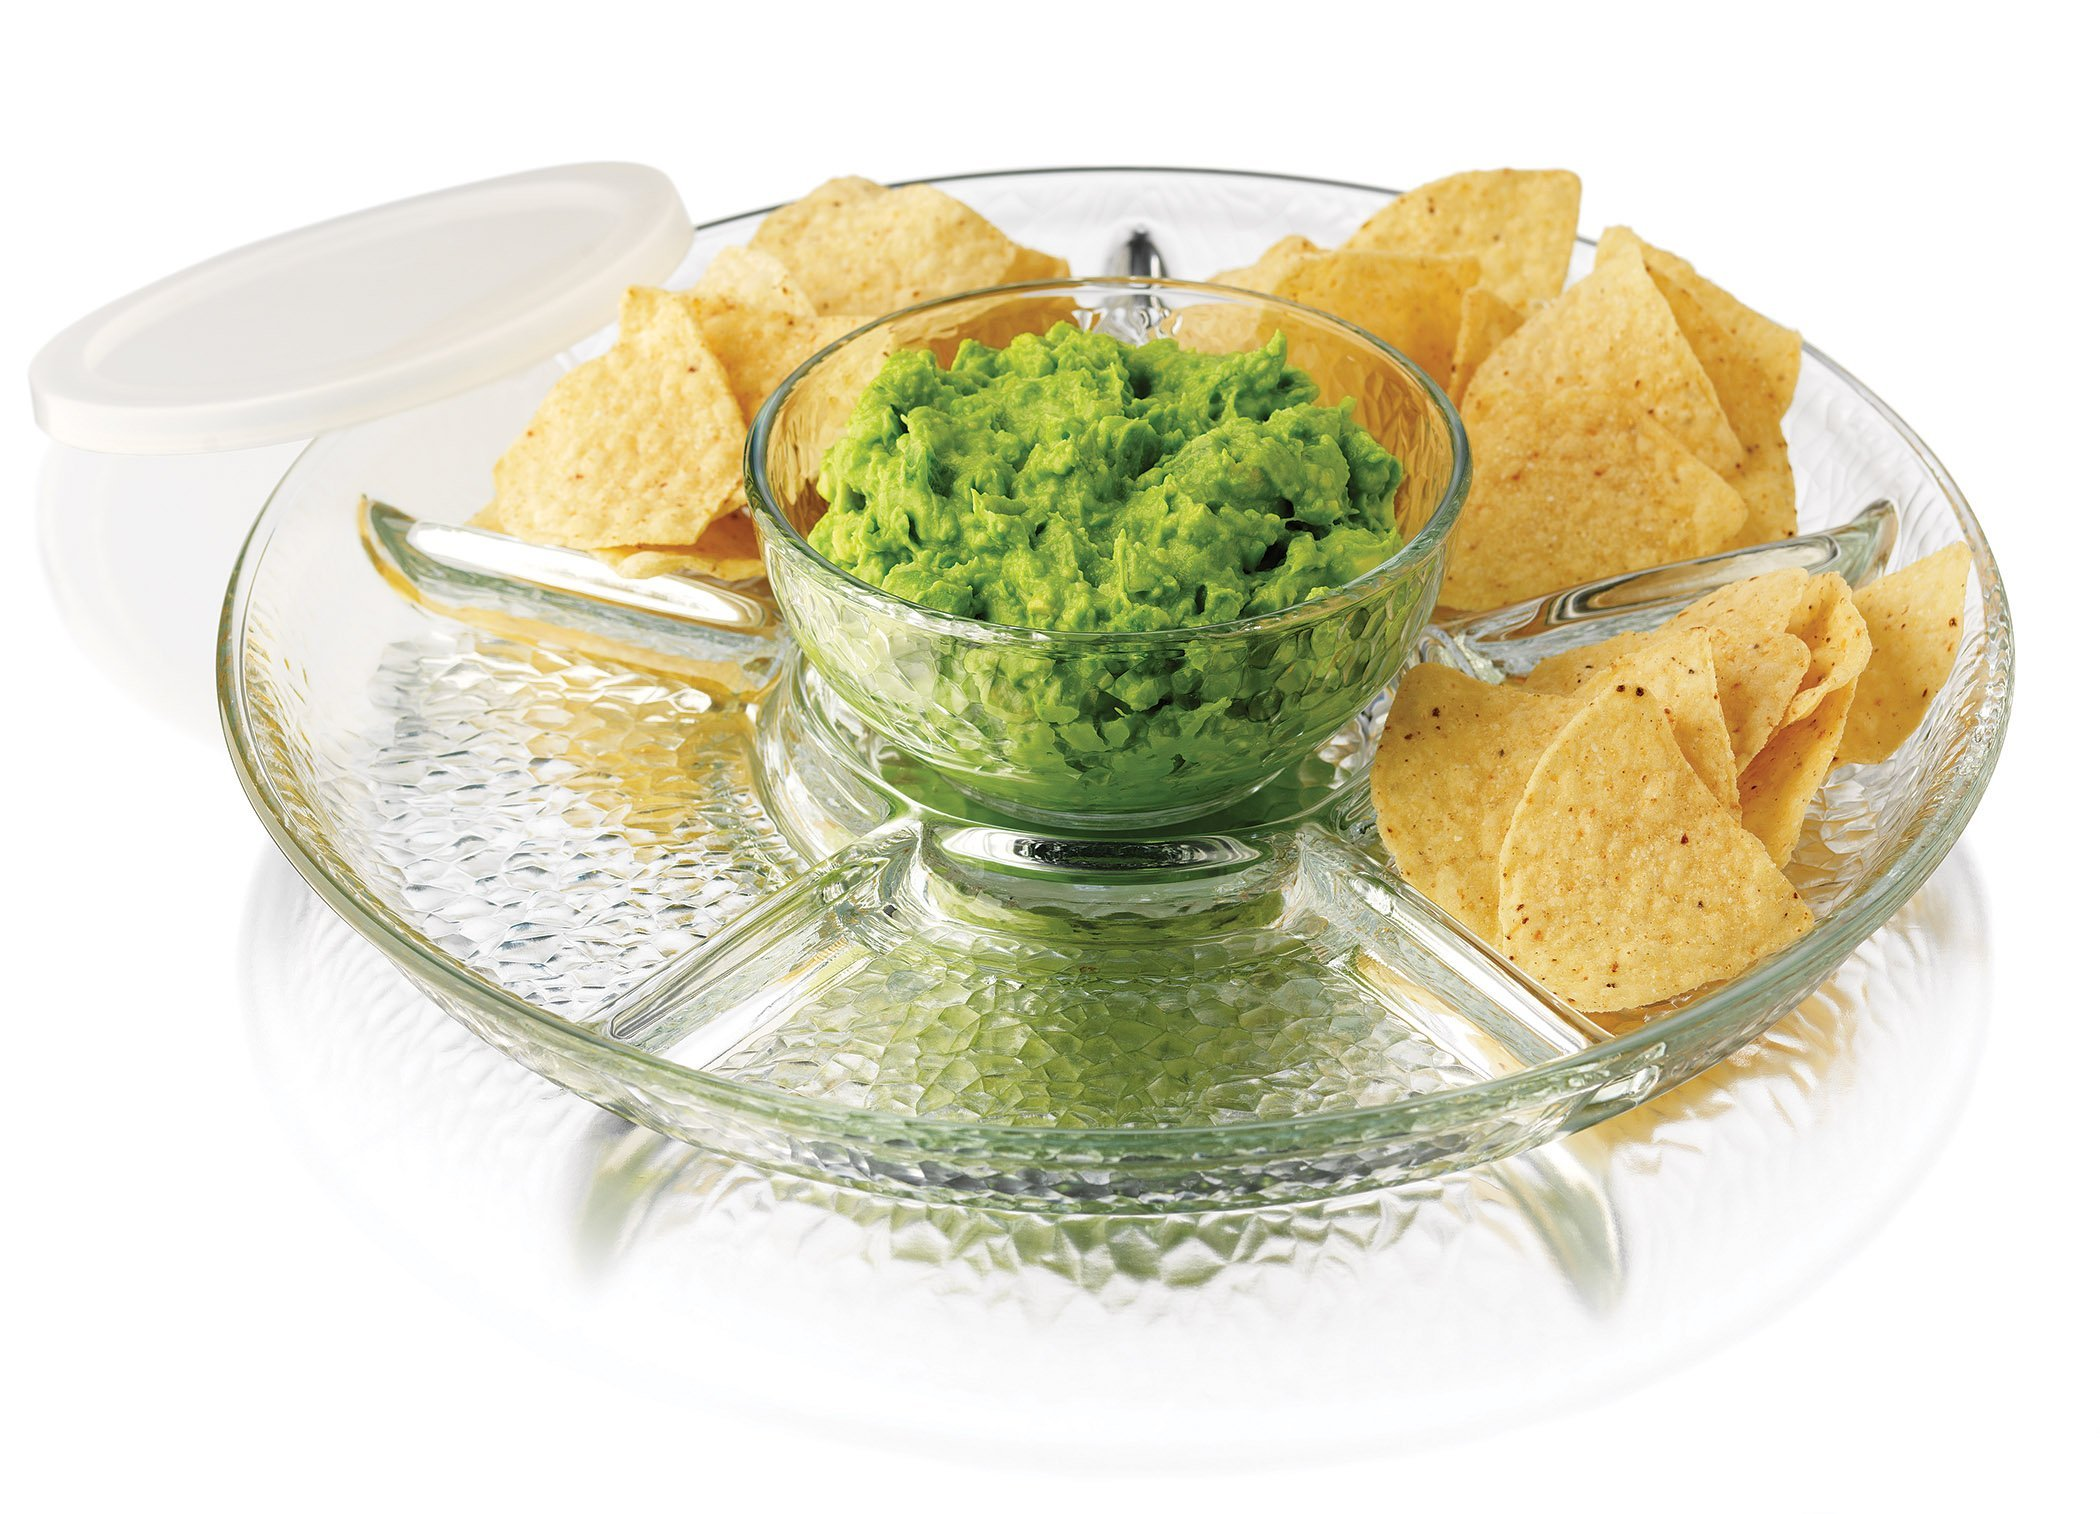 Libbey 3 Piece Frosted Chip & Dip Set, One Size, Clear